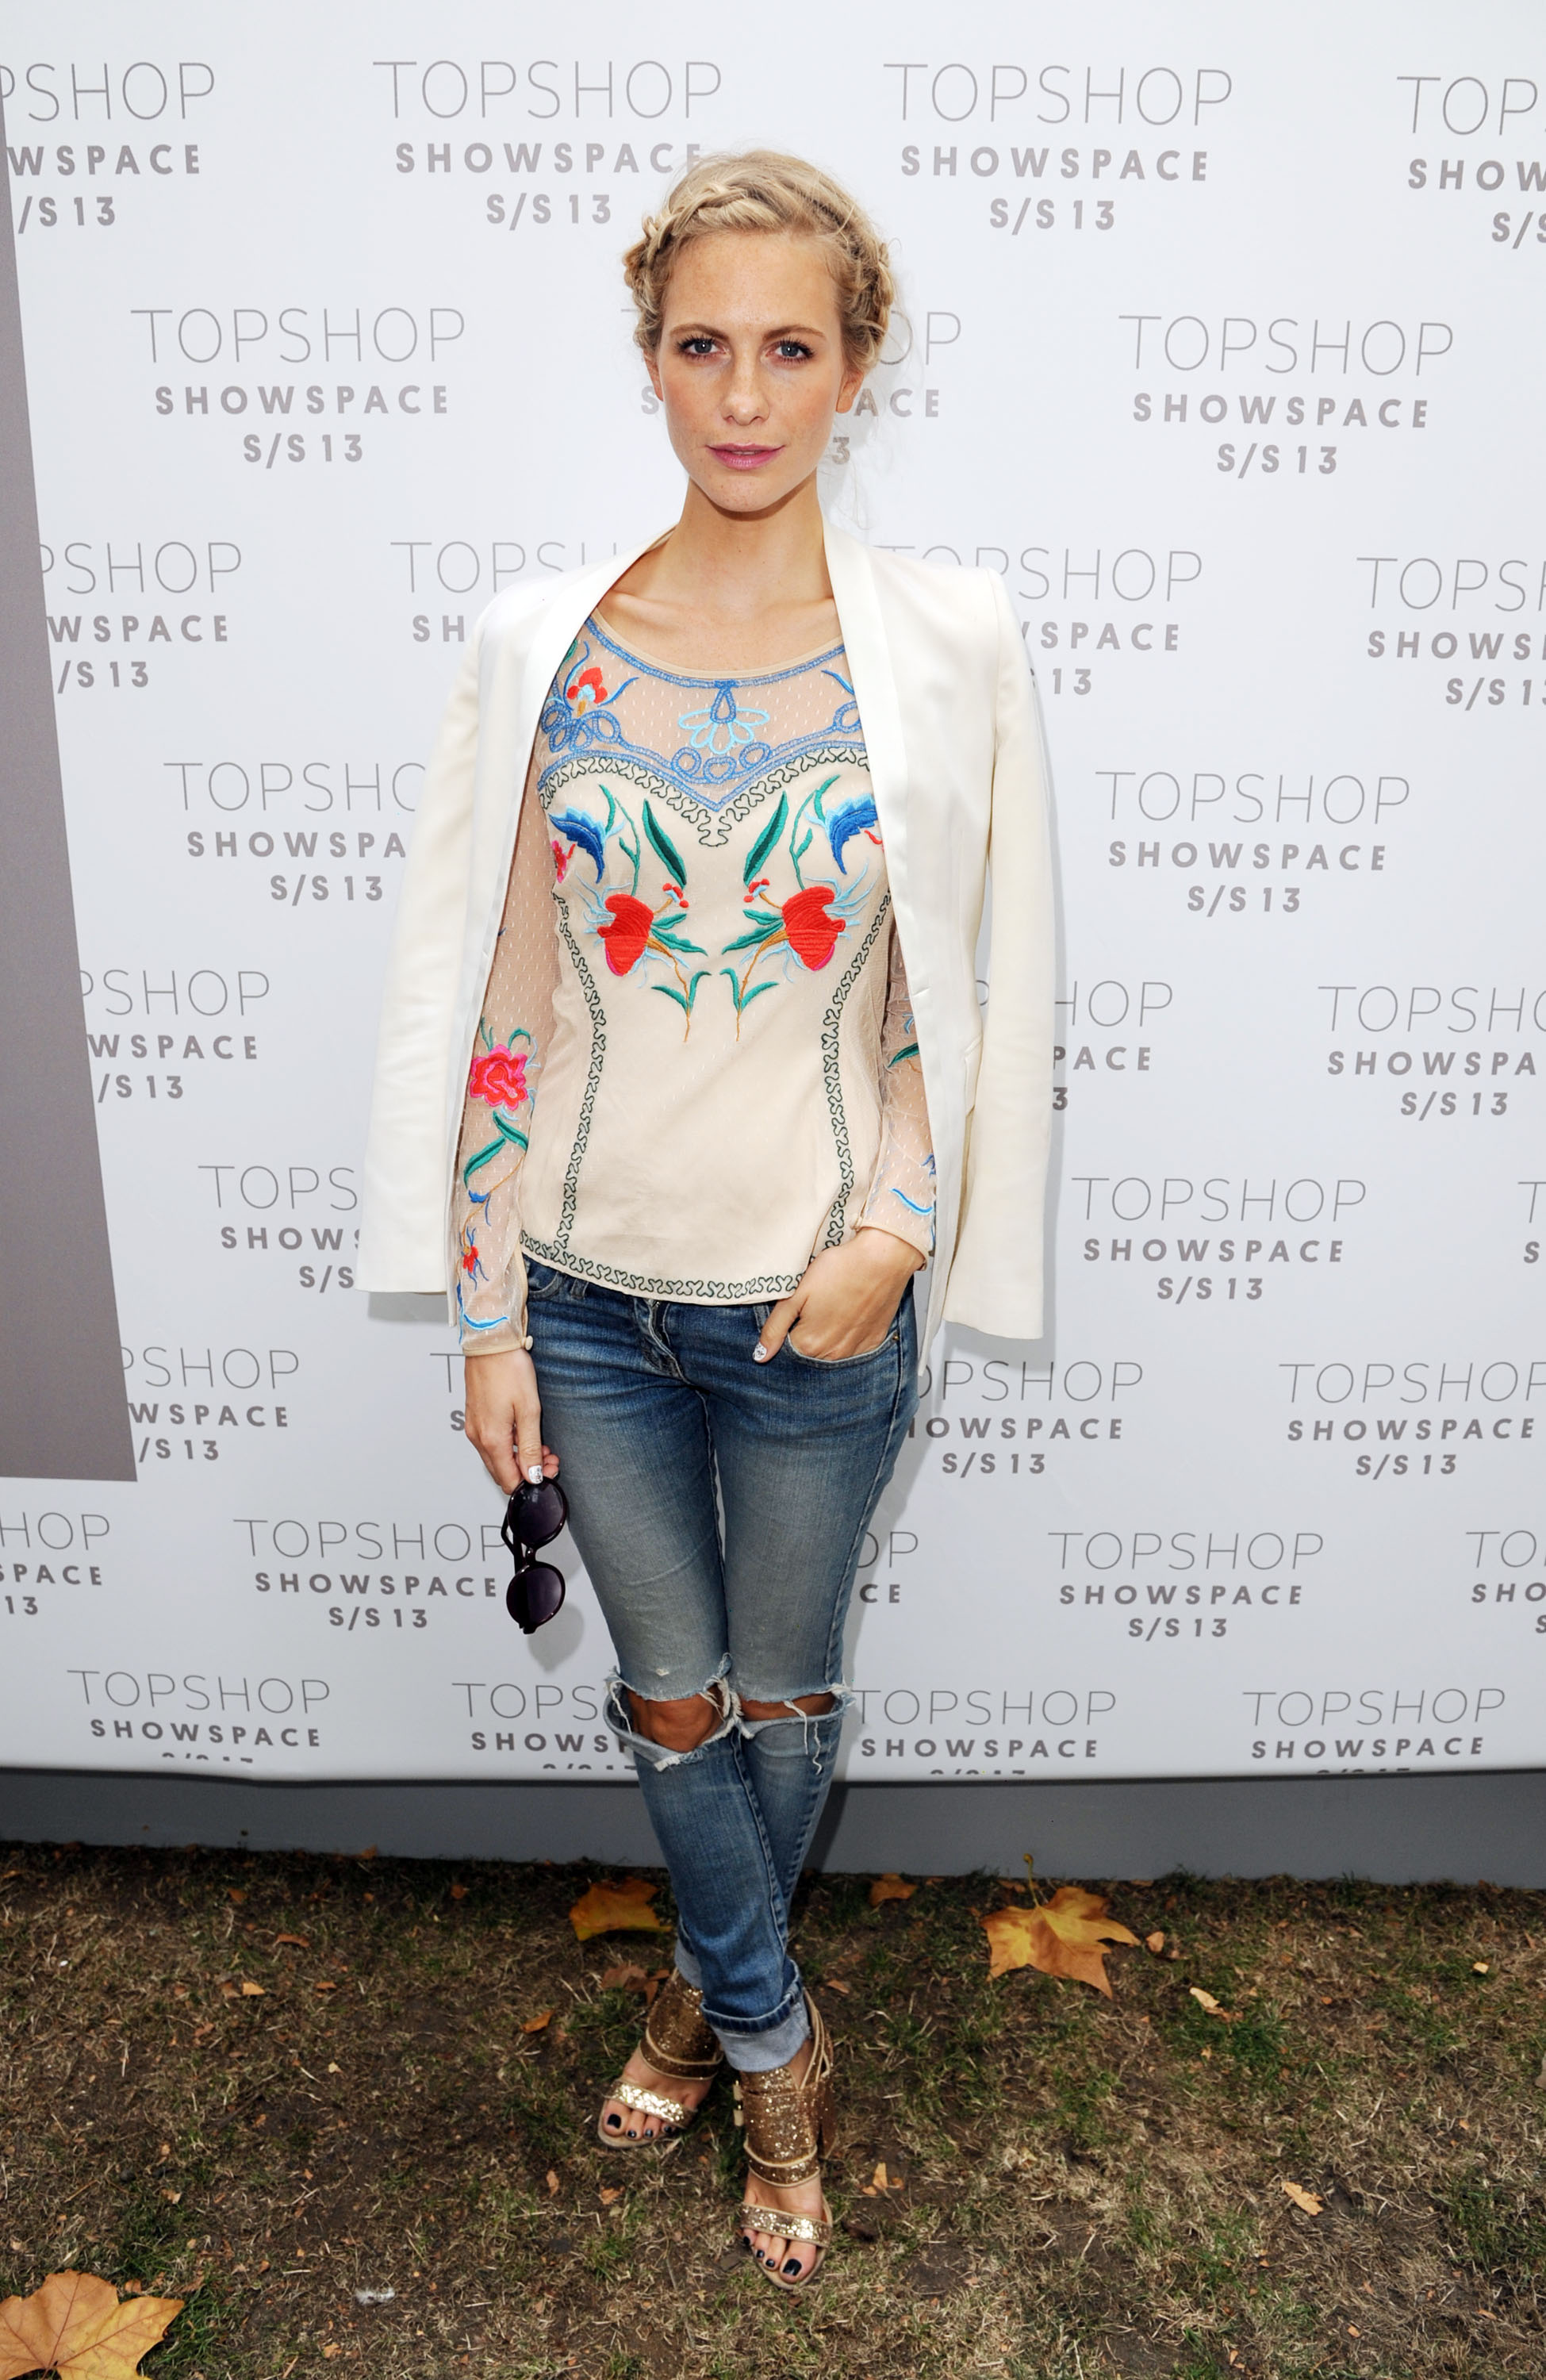 Poppy Delevingne paired an embroidered top with a sleek white blazer at Unique in London.